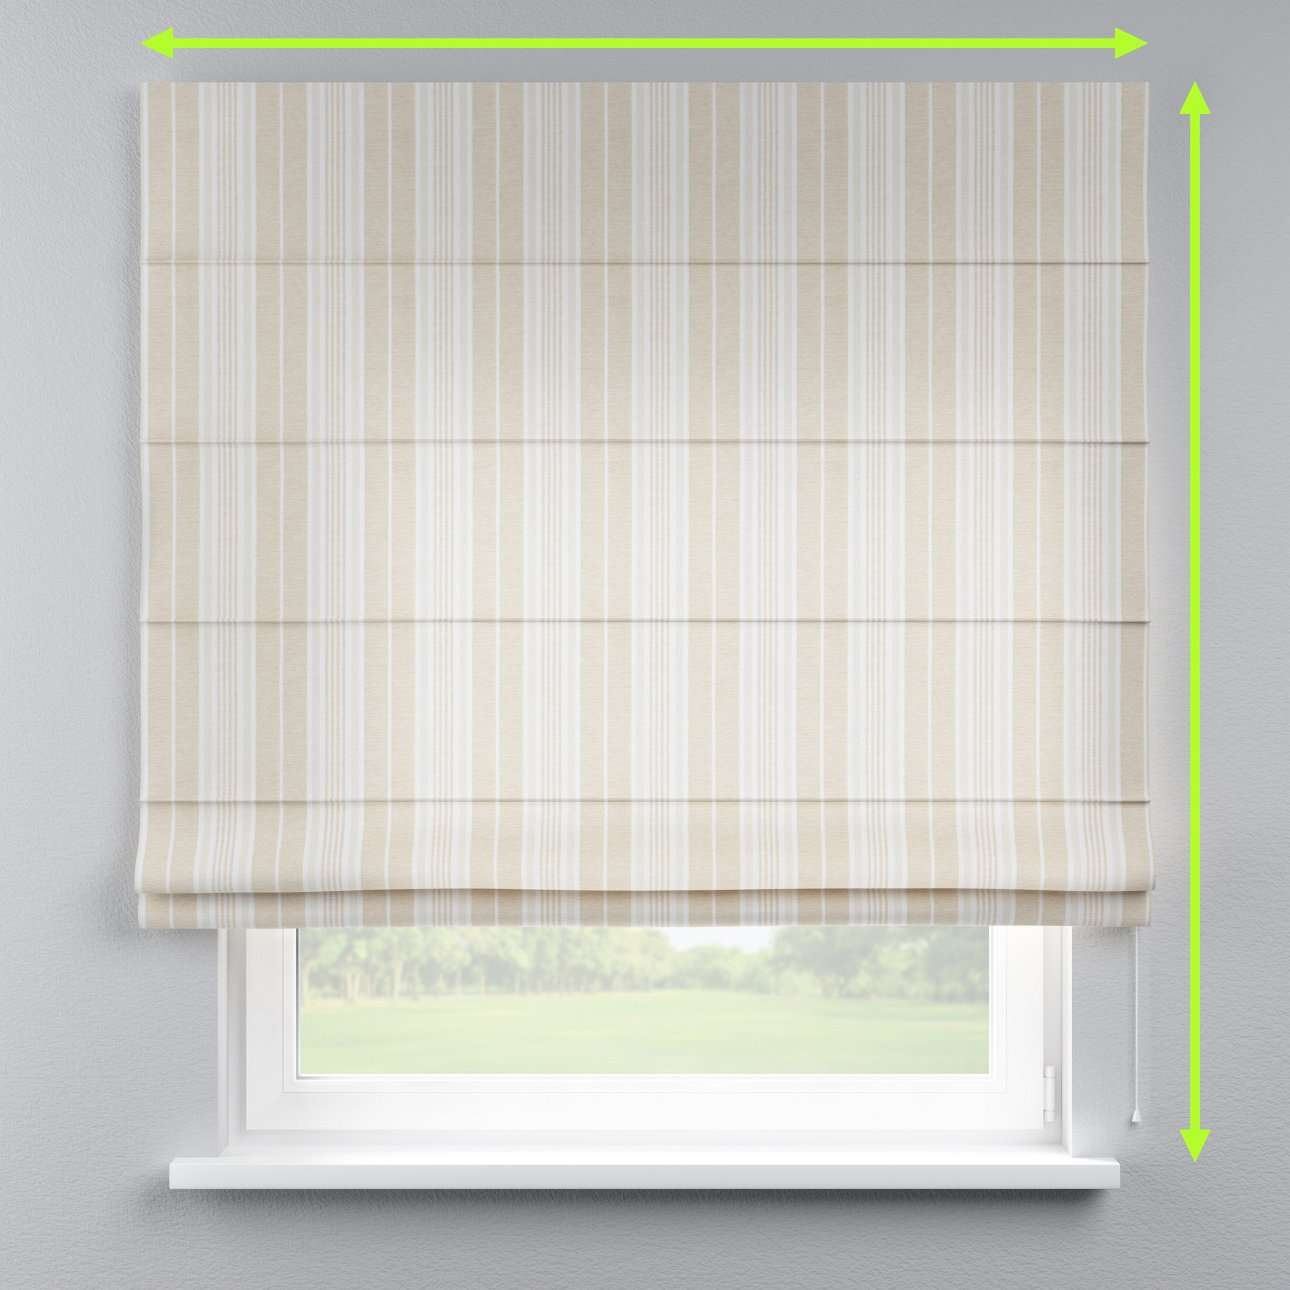 Capri roman blind in collection Rustica, fabric: 138-24